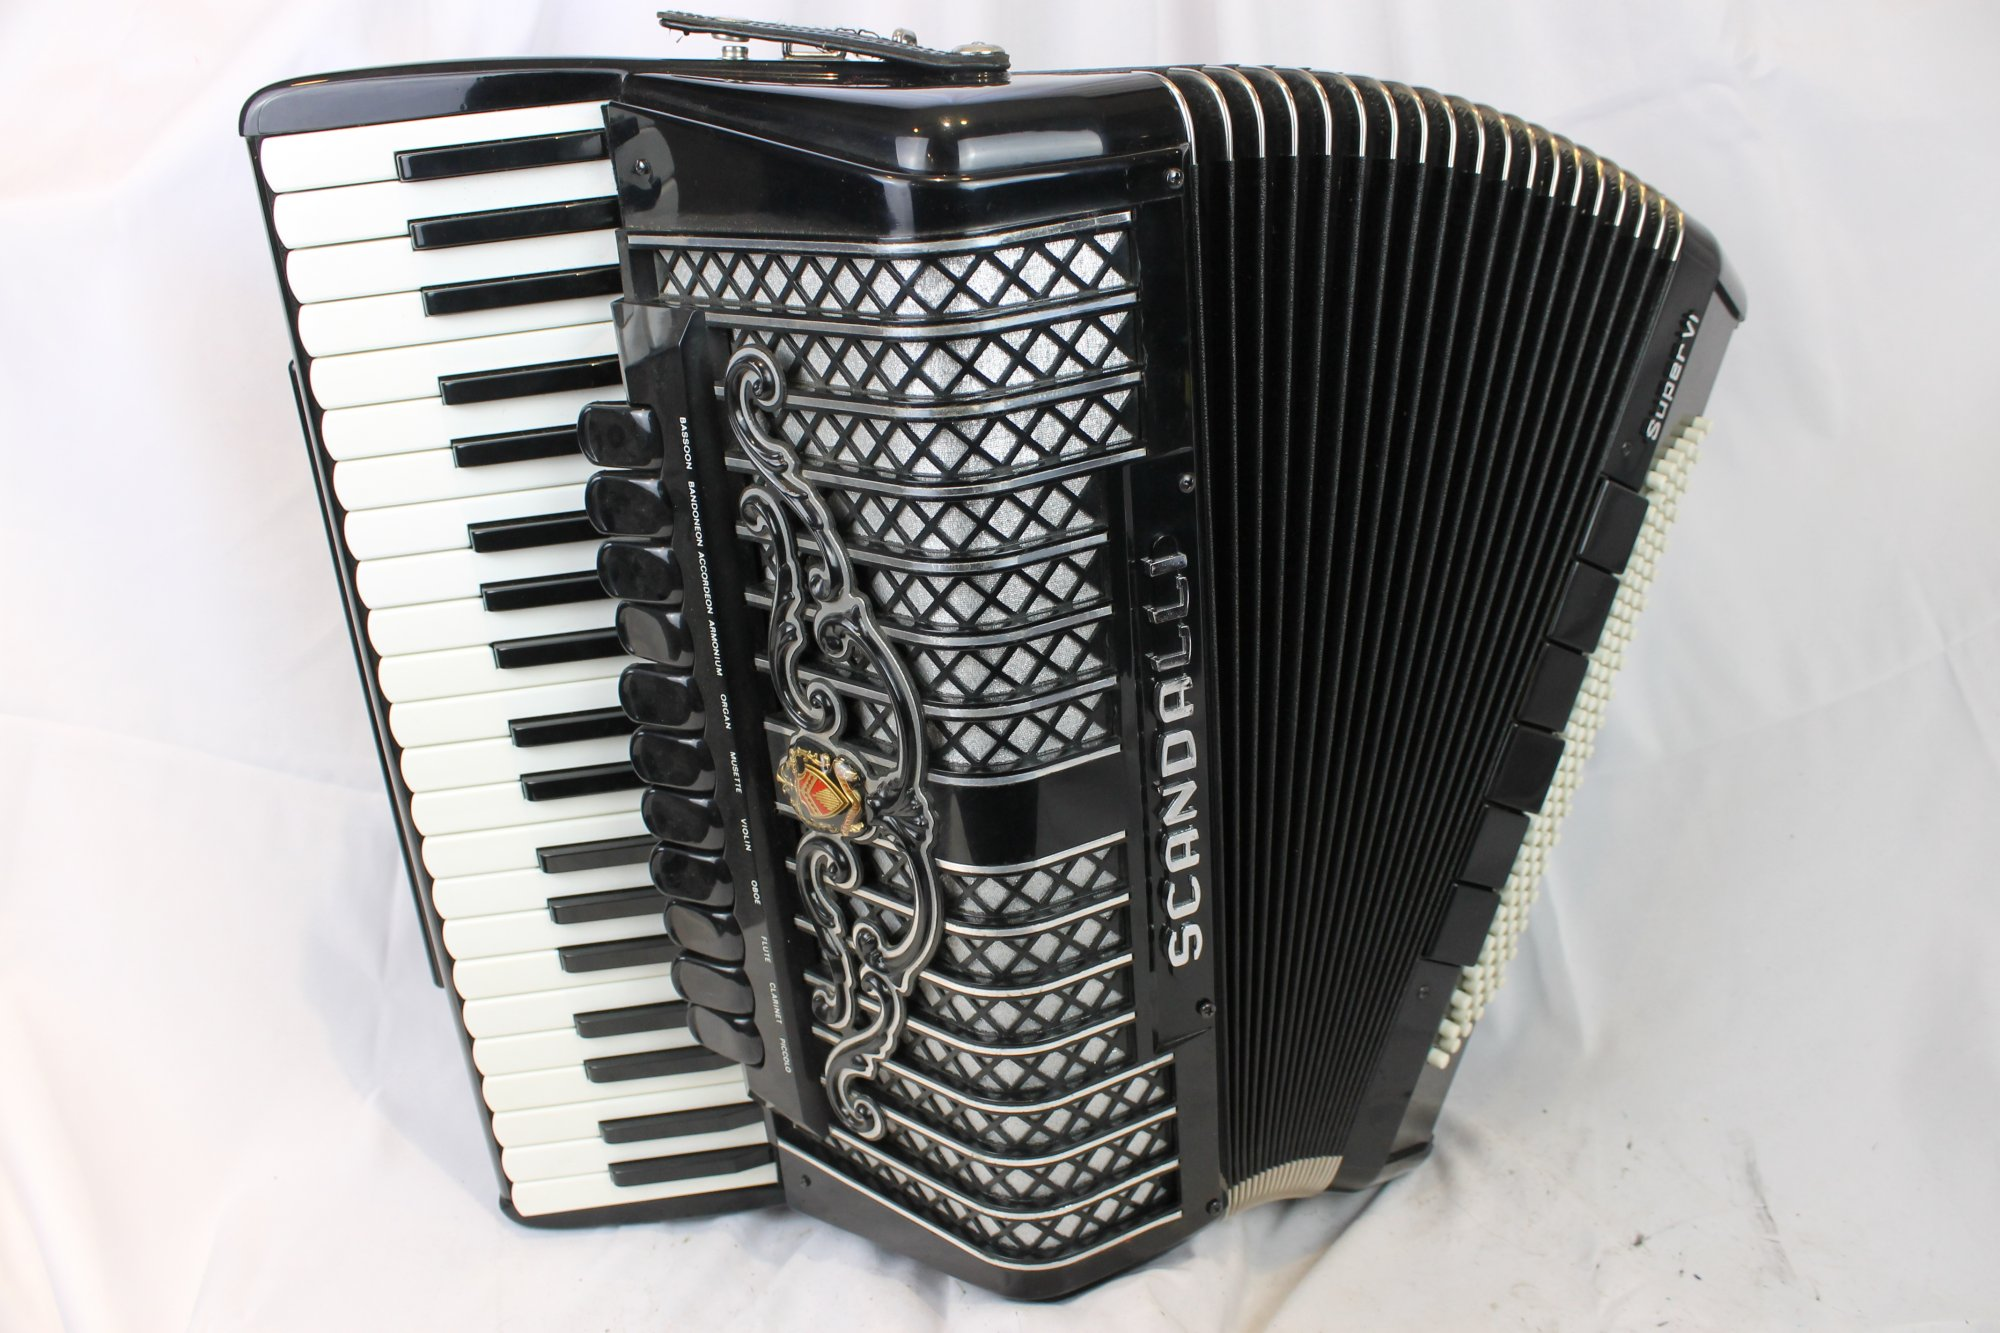 4034 - Black Scandalli Super VI Piano Accordion LMMH 41 120